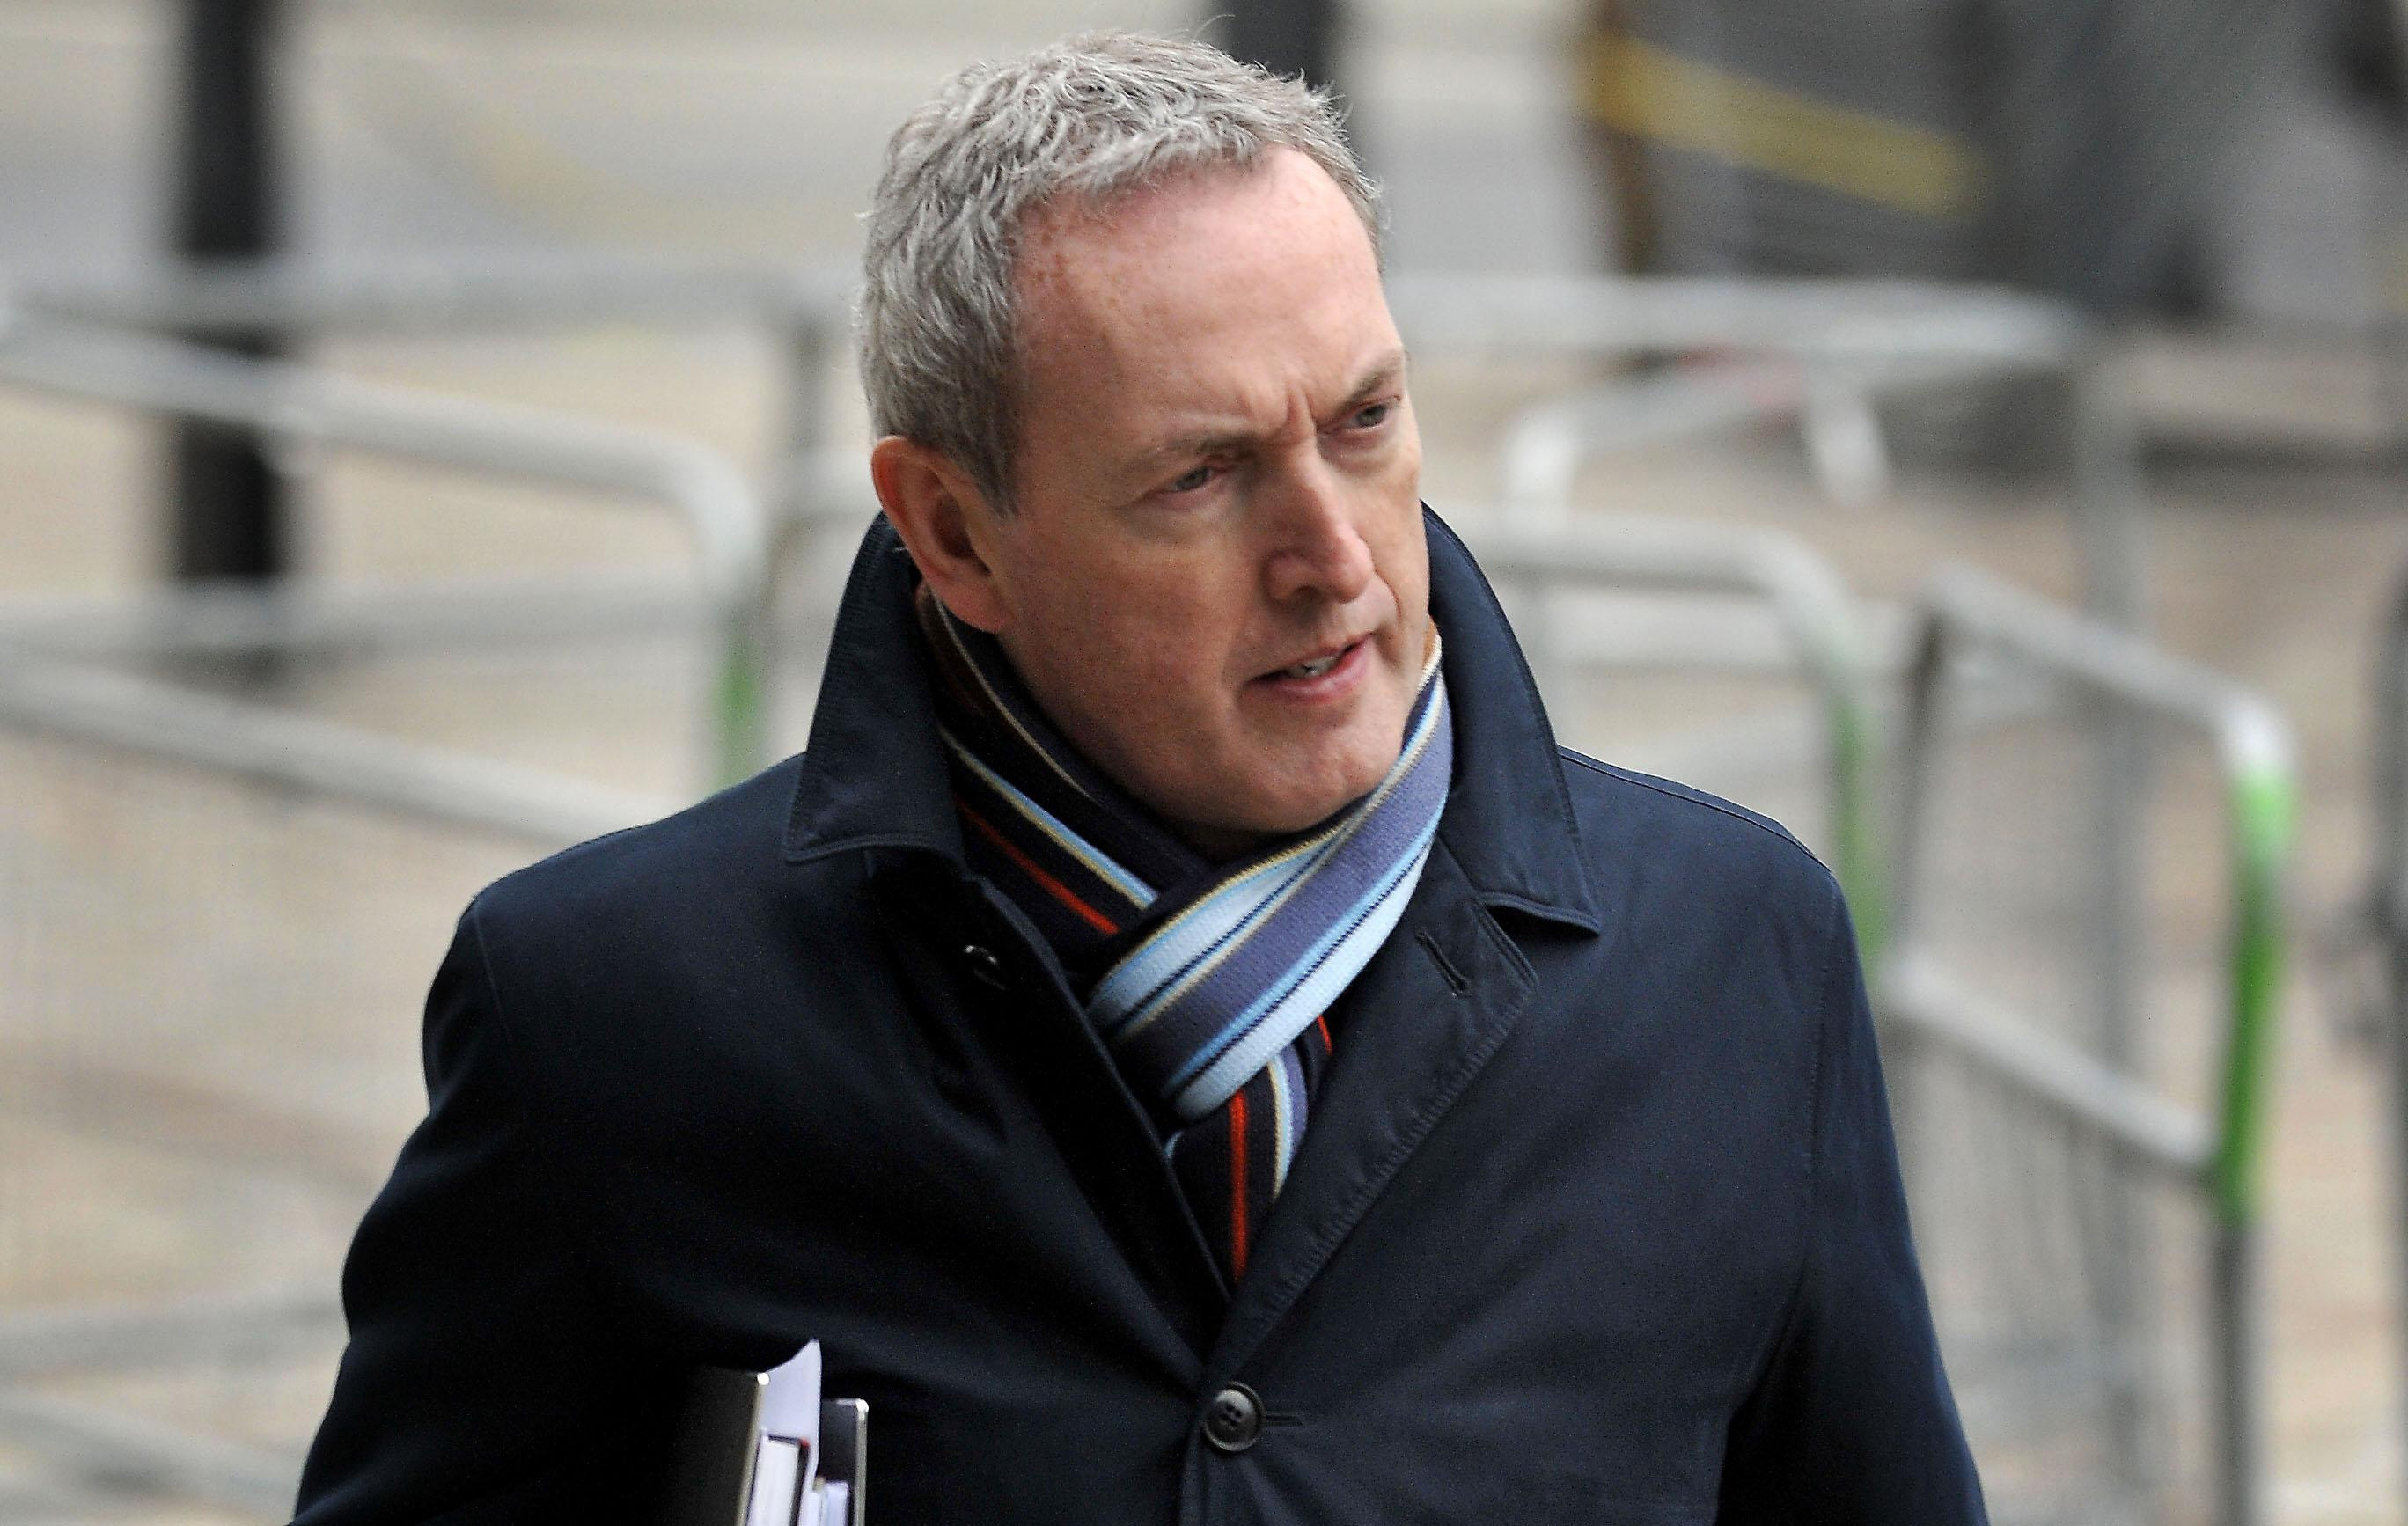 Former defence secretary John Hutton arrives for the Iraq Inquiry at the QEII Conference Centre in London.